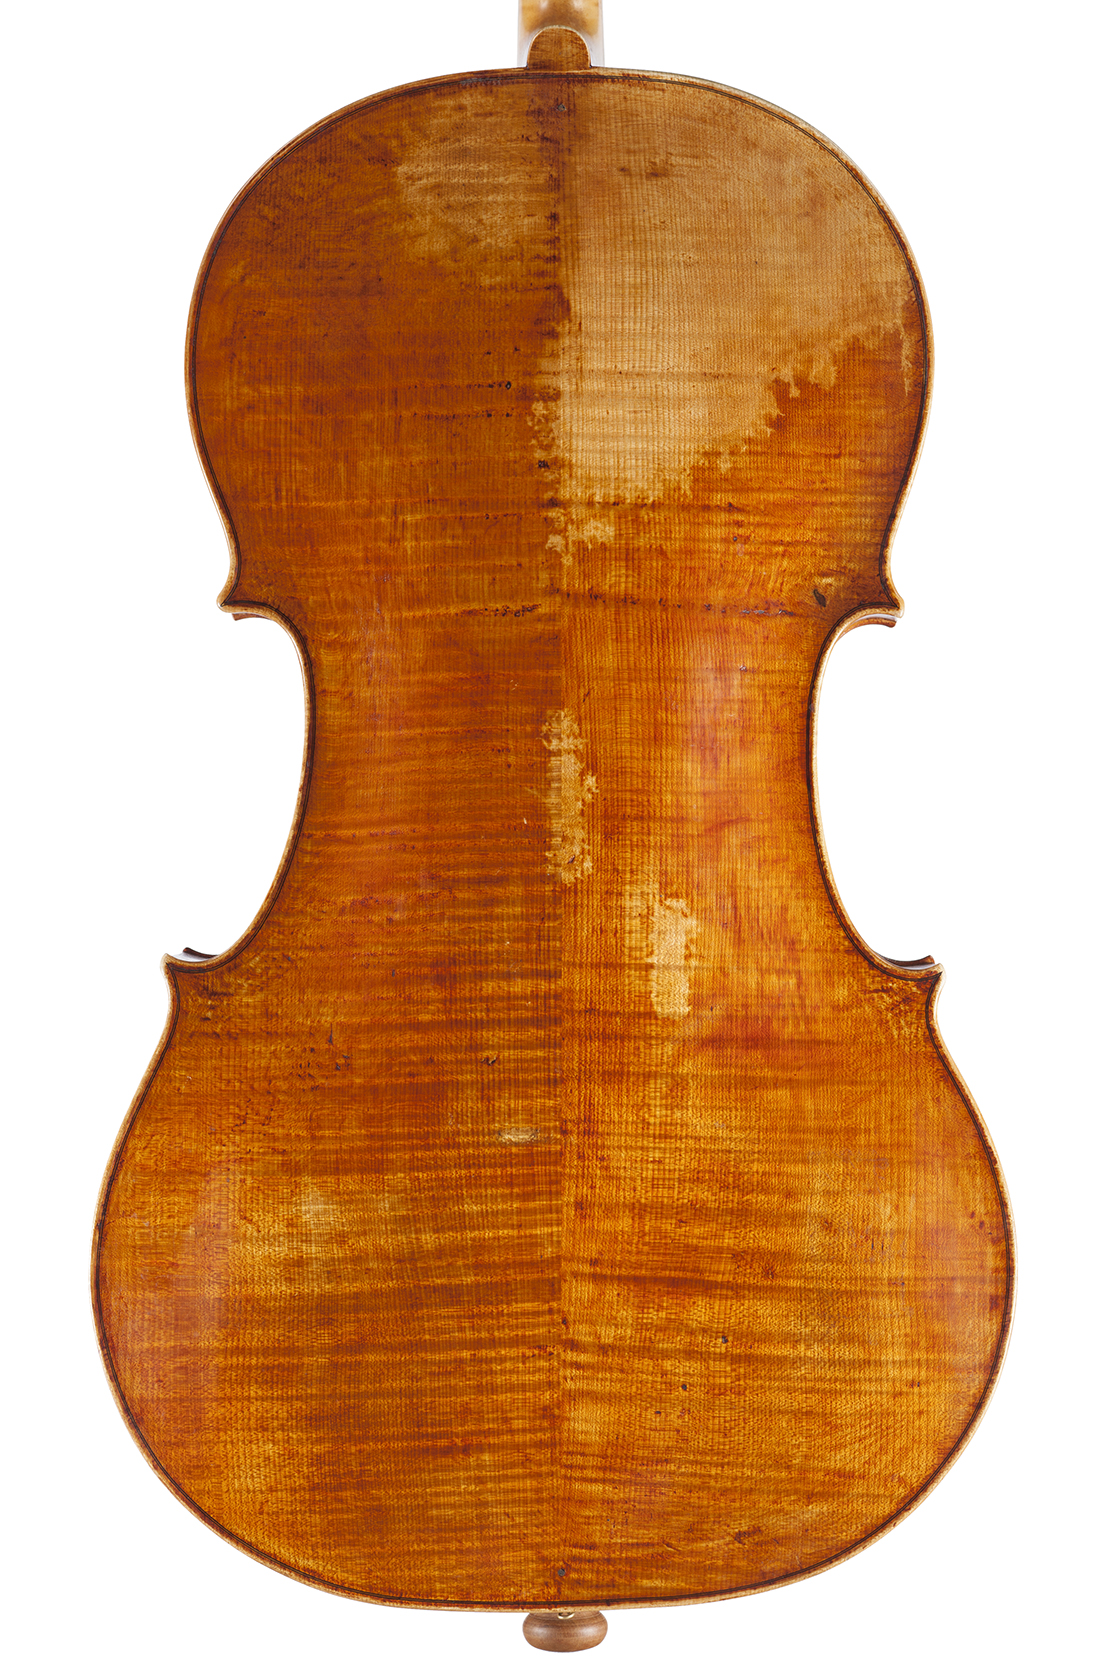 Crijnen-Baroque-'Cello-back-Detmar-Leertouwer-Dominus-Maris-Music-Productions.jpg